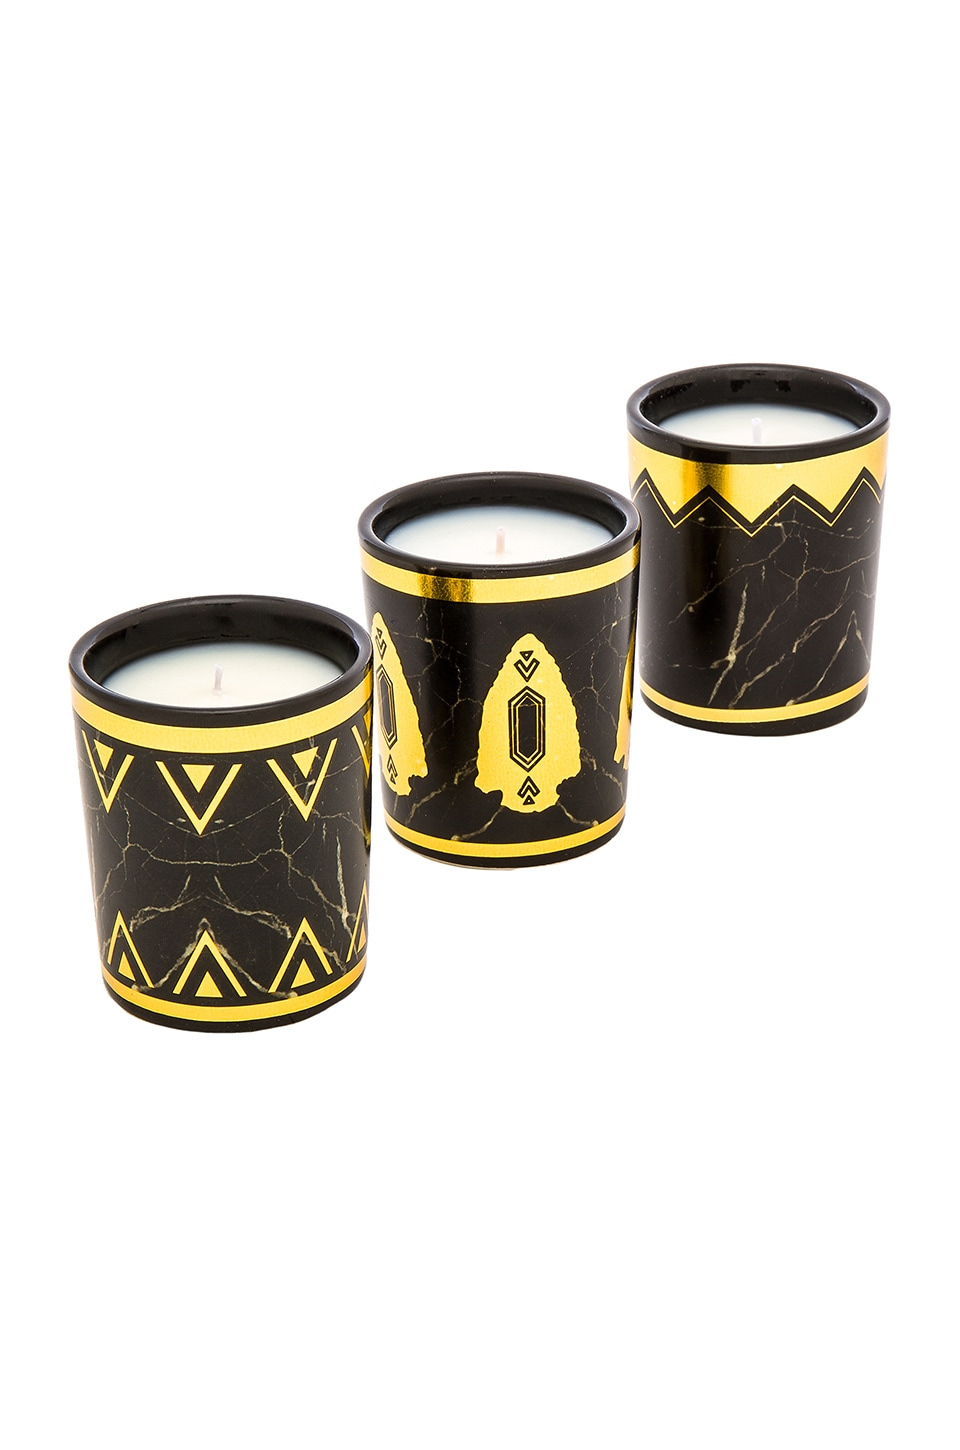 House of Harlow 1960 House of Harlow Set Of 3 Candle Gift Set in Black Howlite